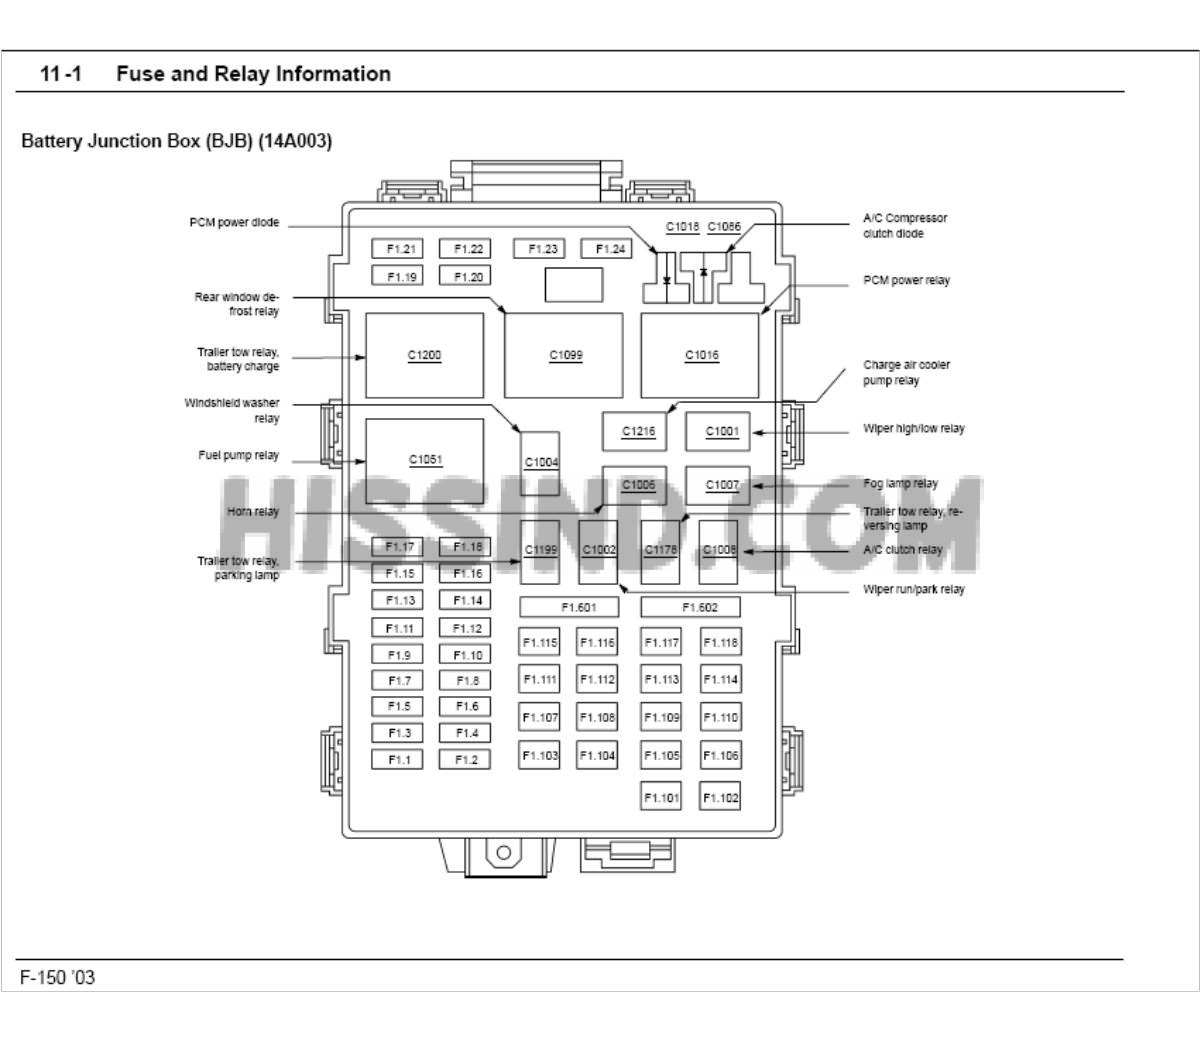 2007 ford f150 ac relay location - wiring diagrams image free